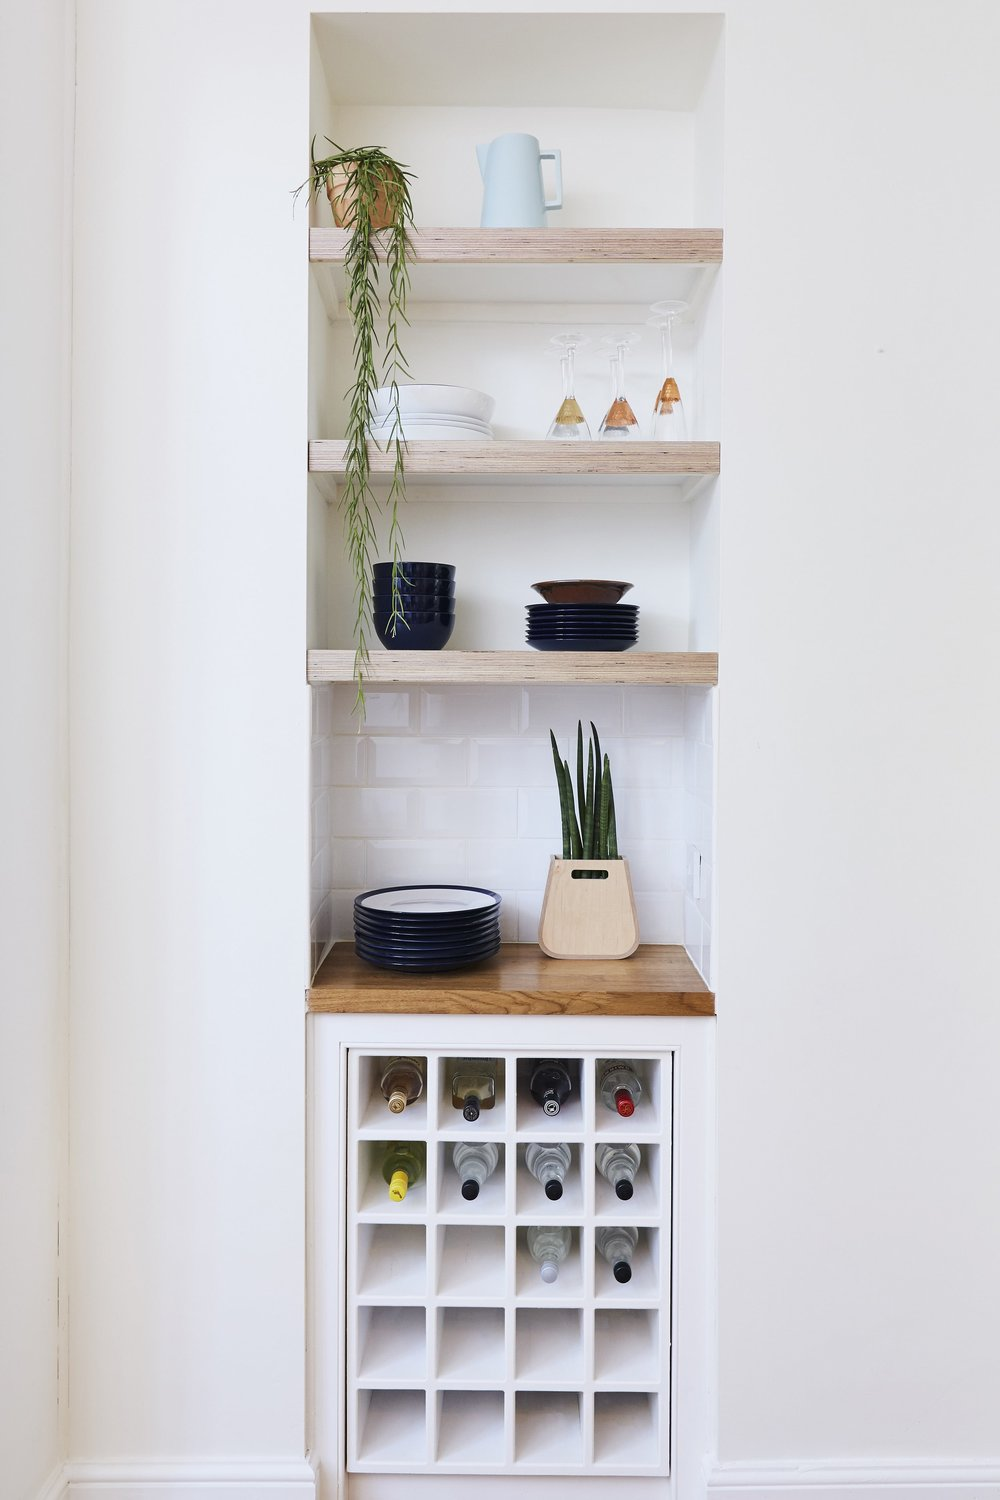 Shelves were hung in several other alcoves throughout the house.